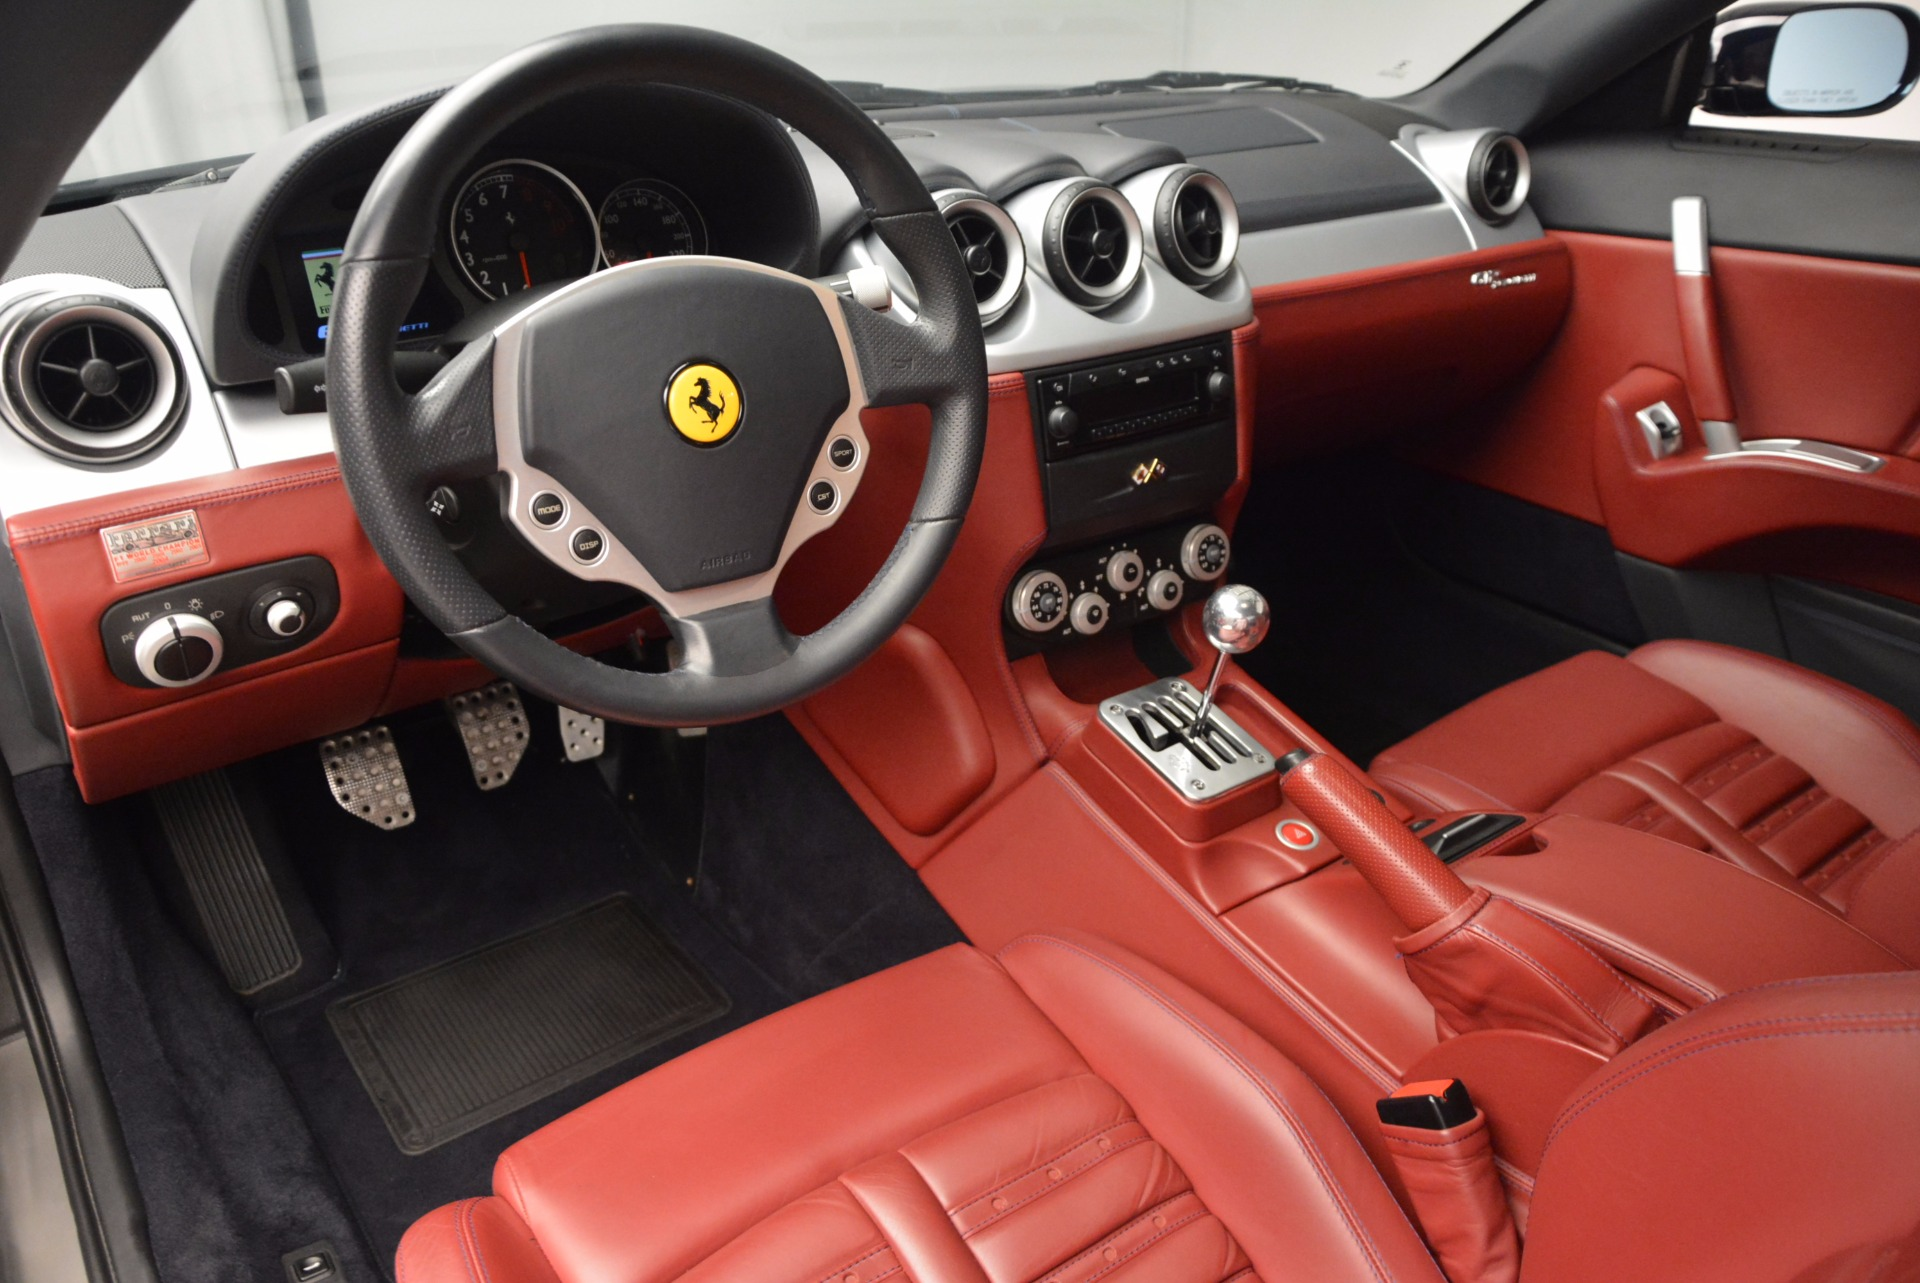 Used 2005 Ferrari 612 Scaglietti 6-Speed Manual For Sale In Greenwich, CT 854_p2